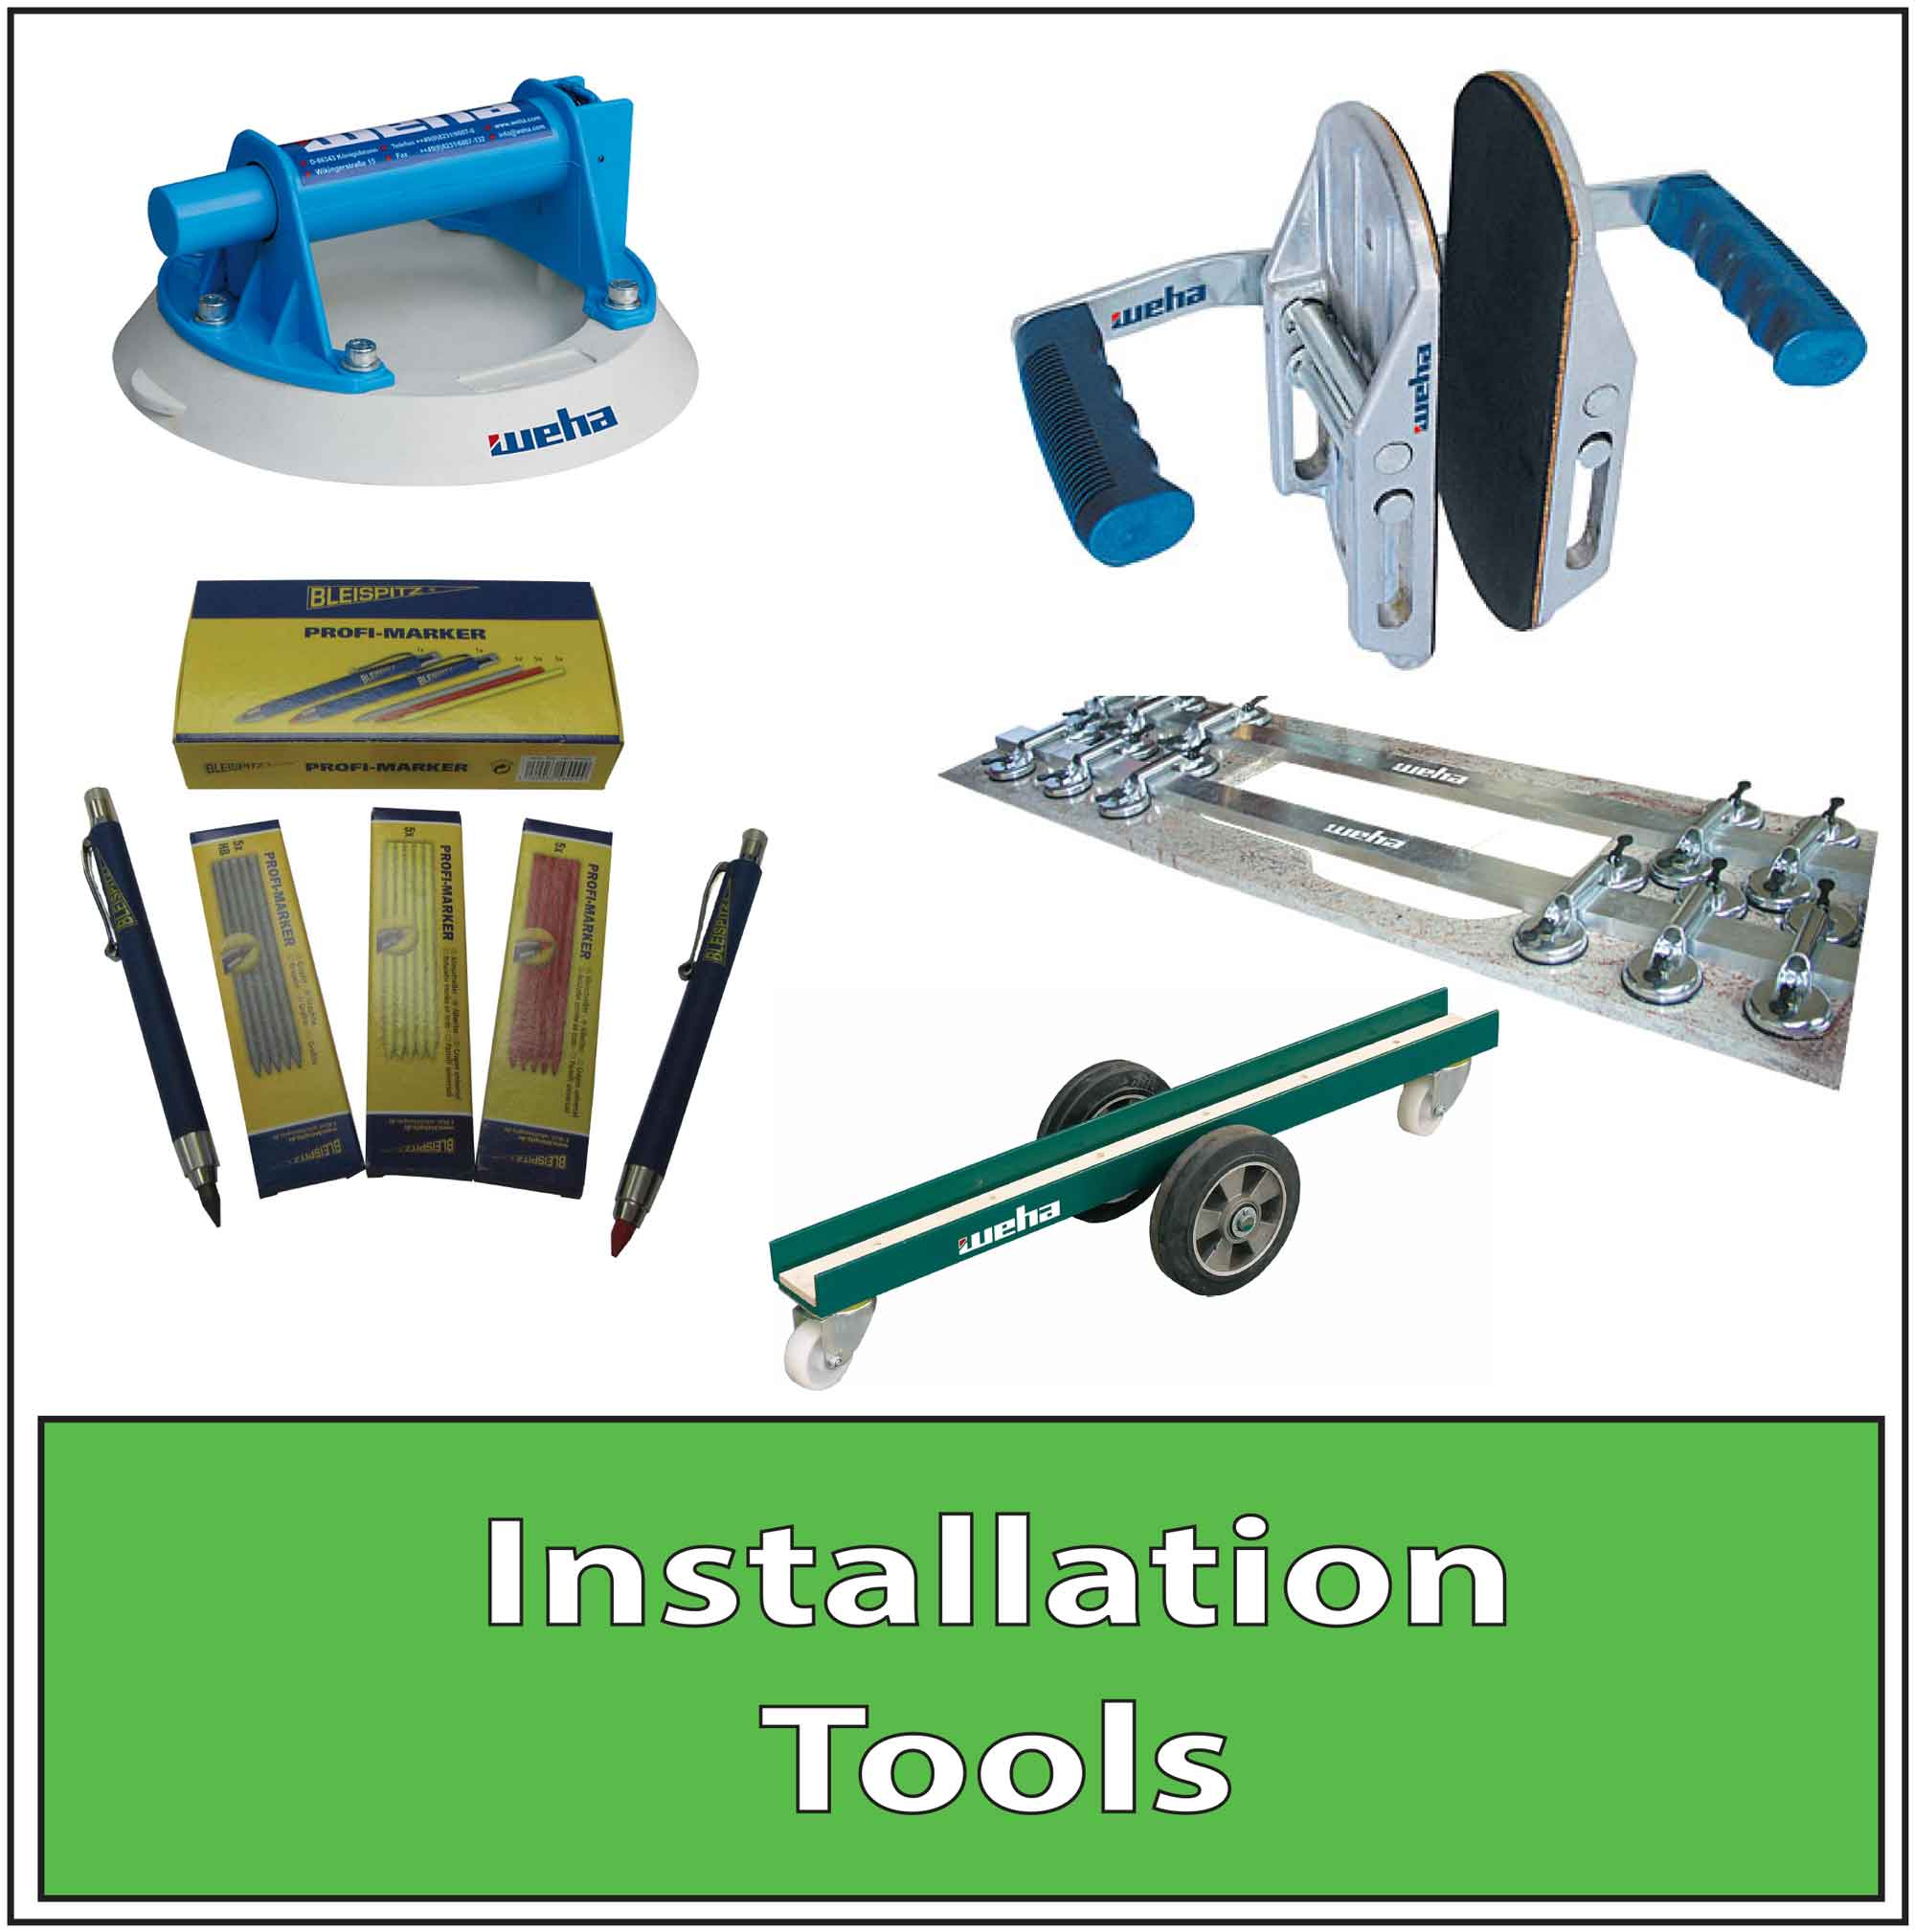 Granite Vacuum Cup Granite Pencils Granite Installation Tools